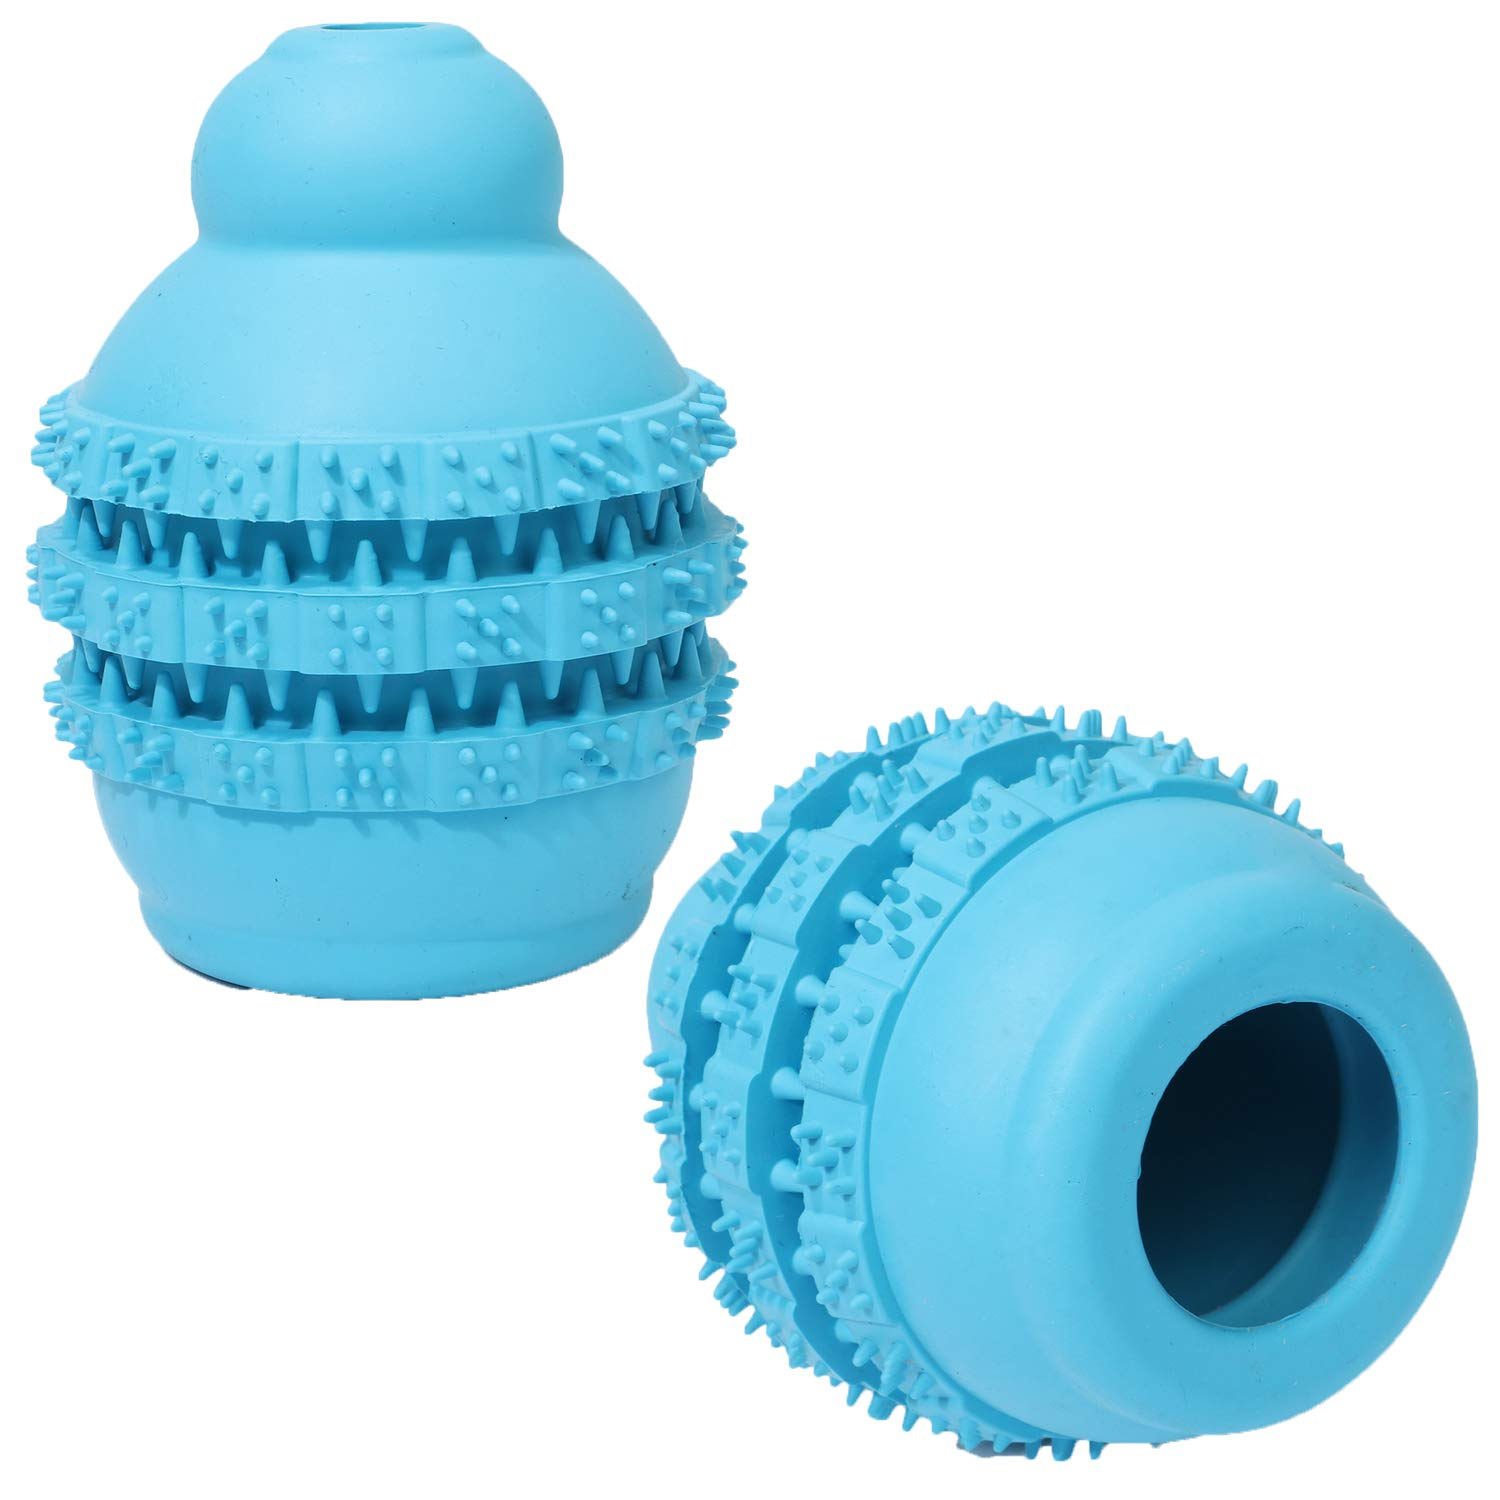 bluee 7×9cm bluee 7×9cm Pet Puppy Training Tooth Cleaning Toy 2 Non-Toxic Soft Rubber Ball Gourd Leaking Food Ball